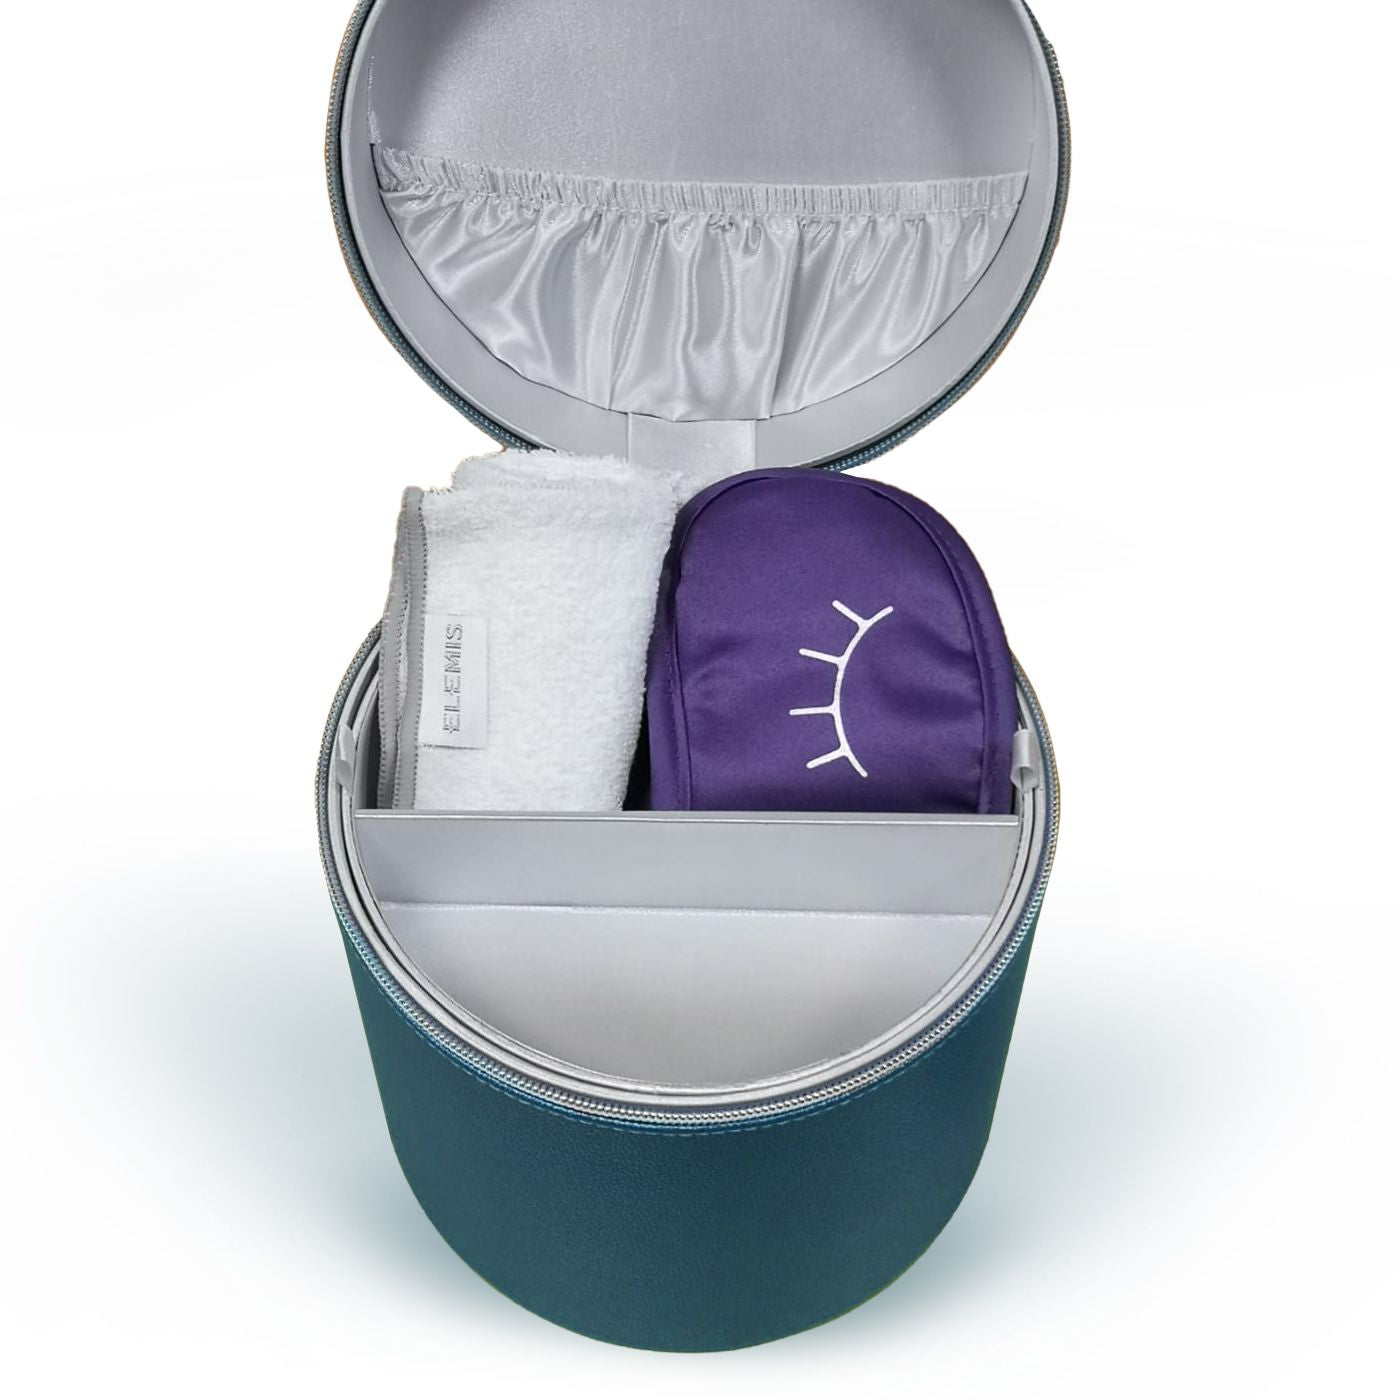 Elemis Beauty Case